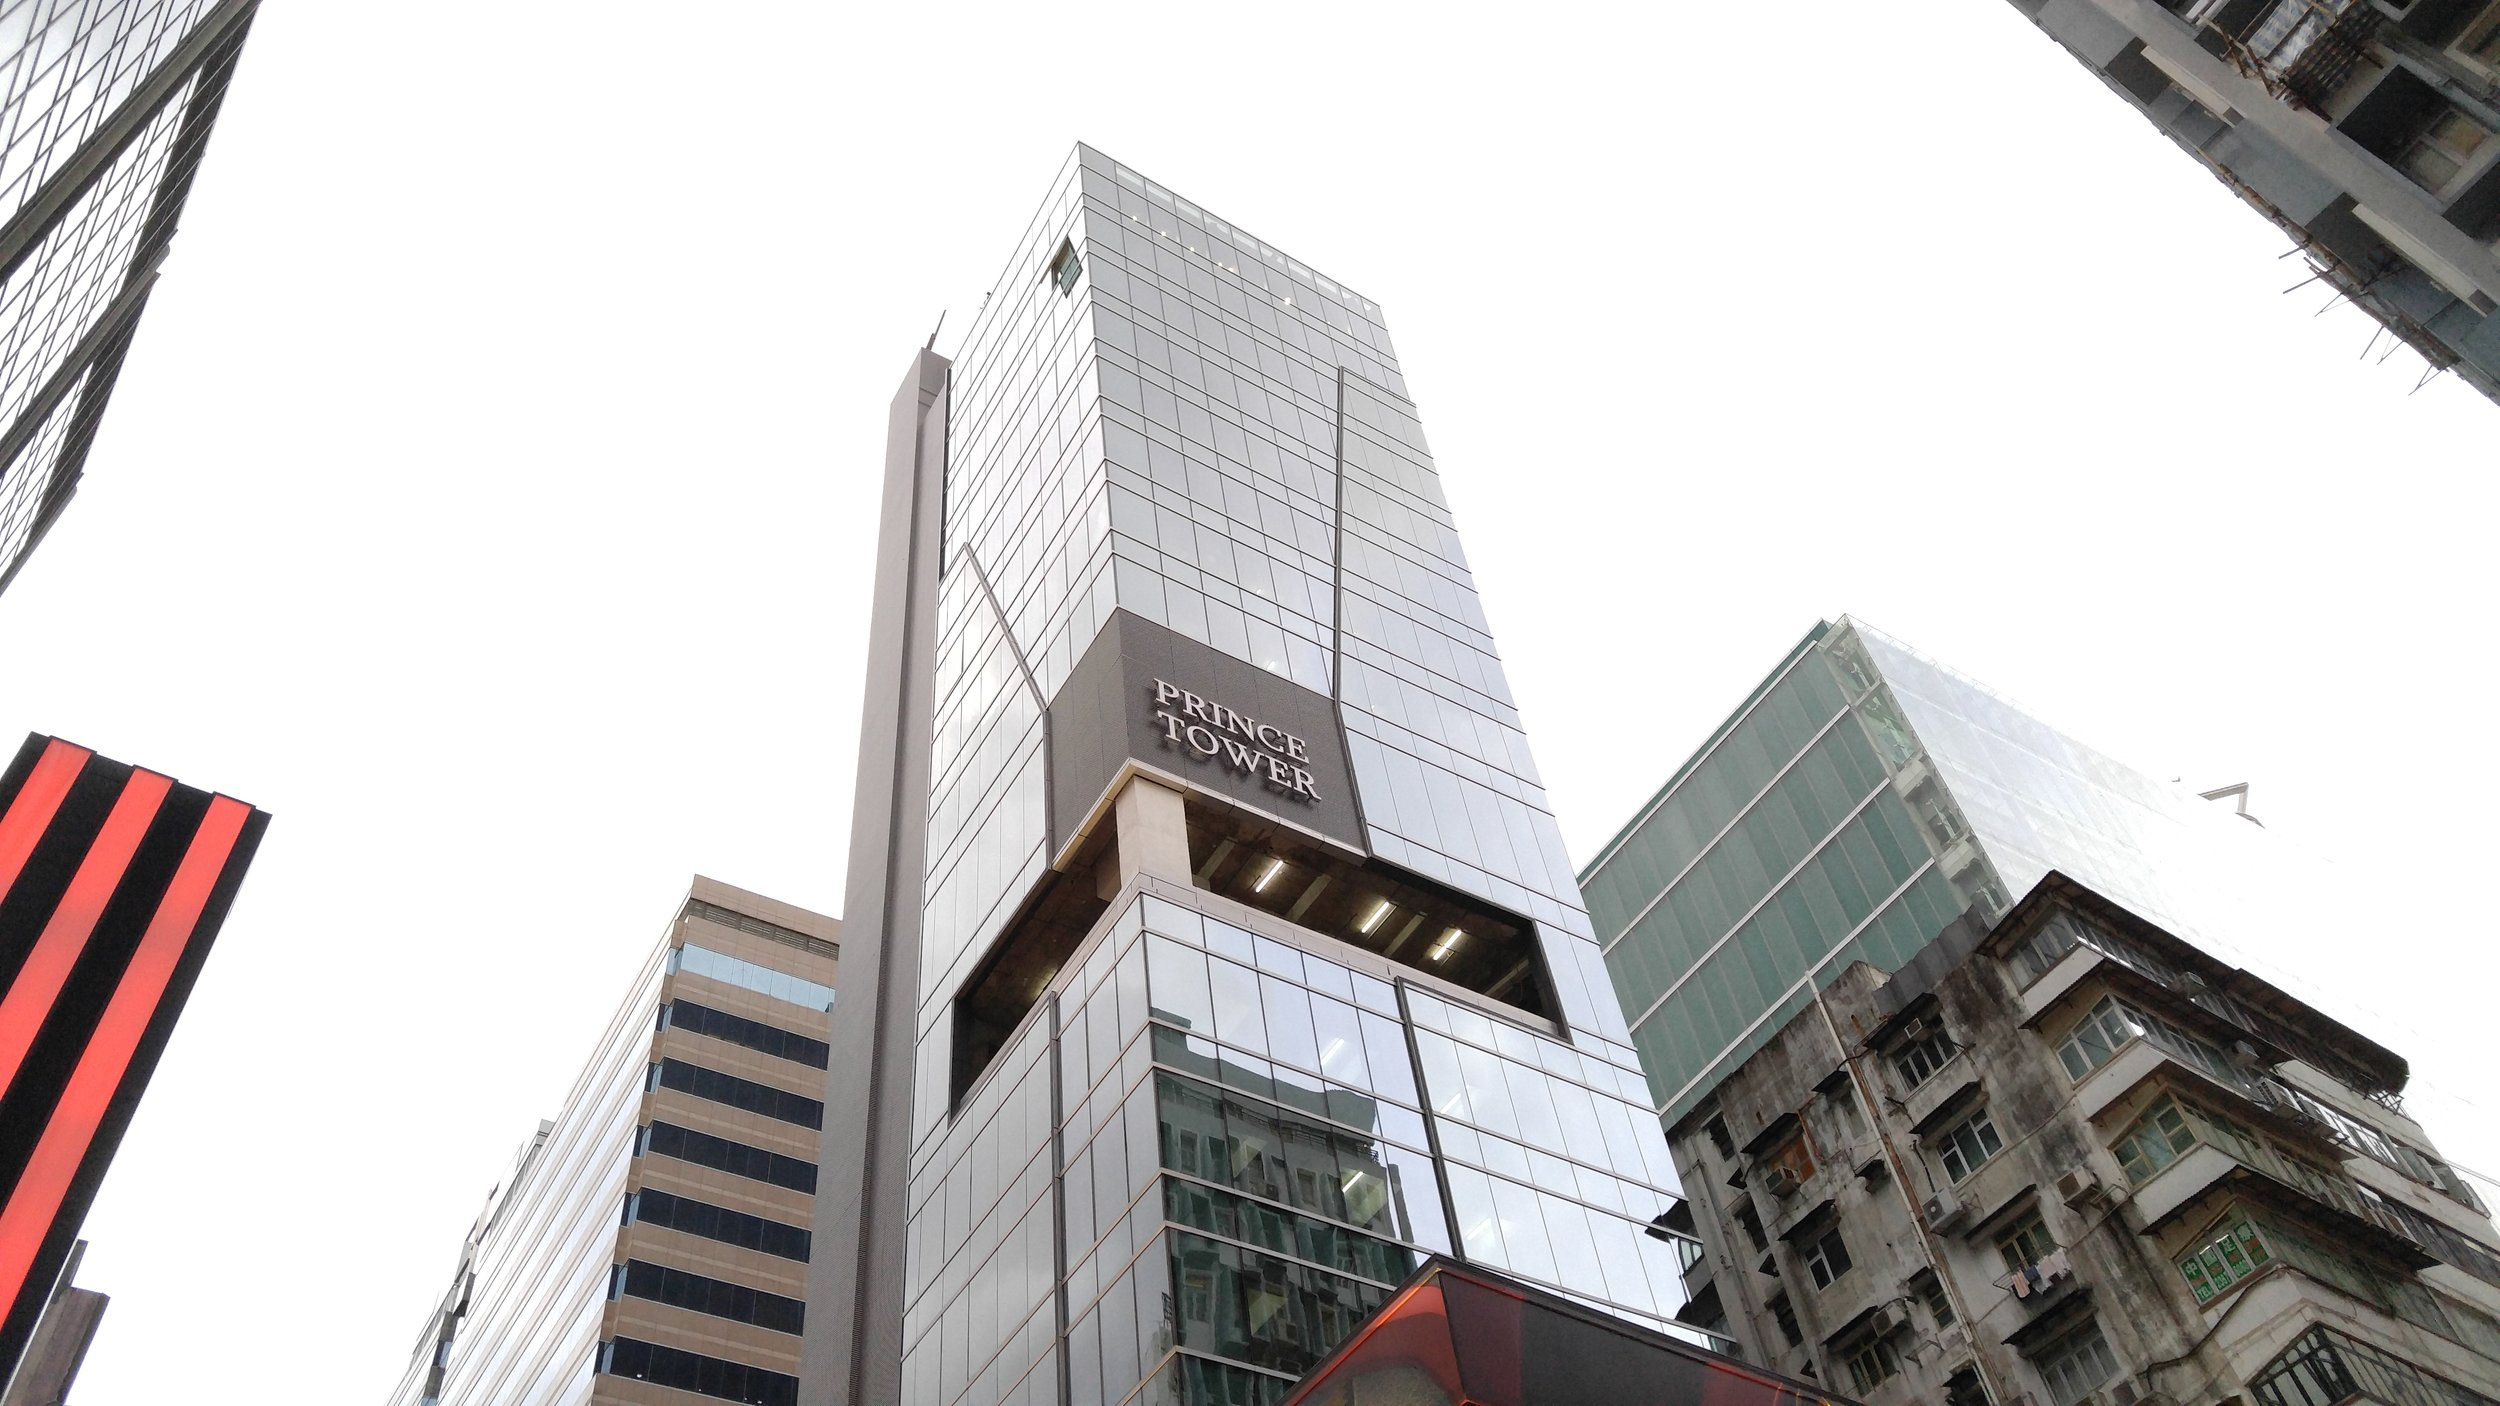 Prince Tower Hong Kong FP-900 FirePro FIrePro protection work.jpg